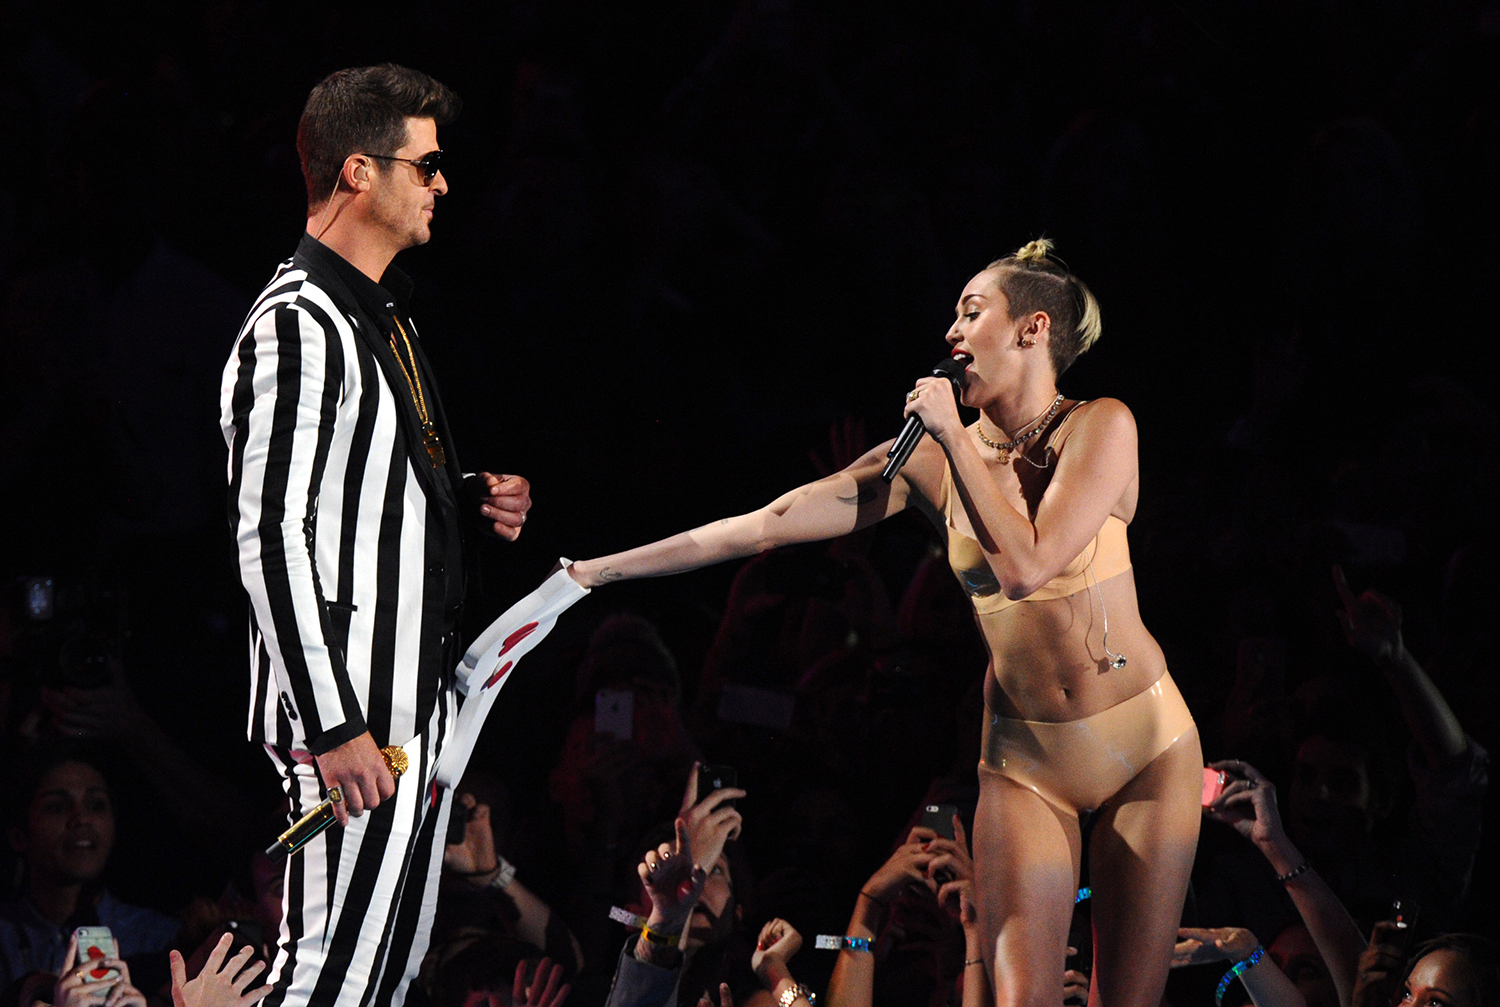 Robin Thicke, left, and Miley Cyrus perform